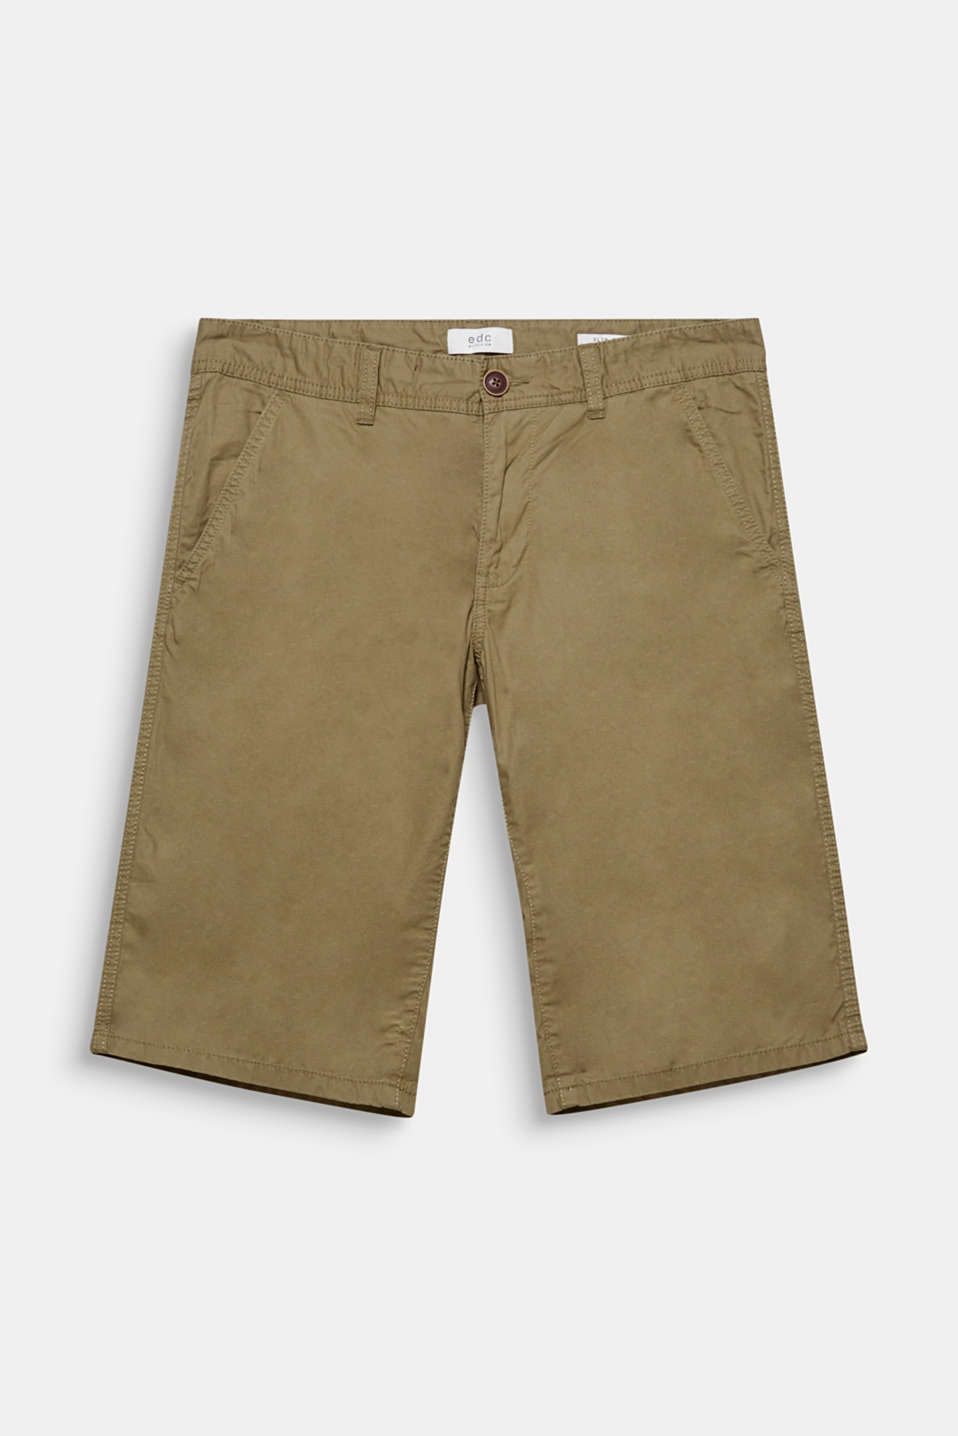 The fine minimal print gives these smooth chino shorts a subtle update.